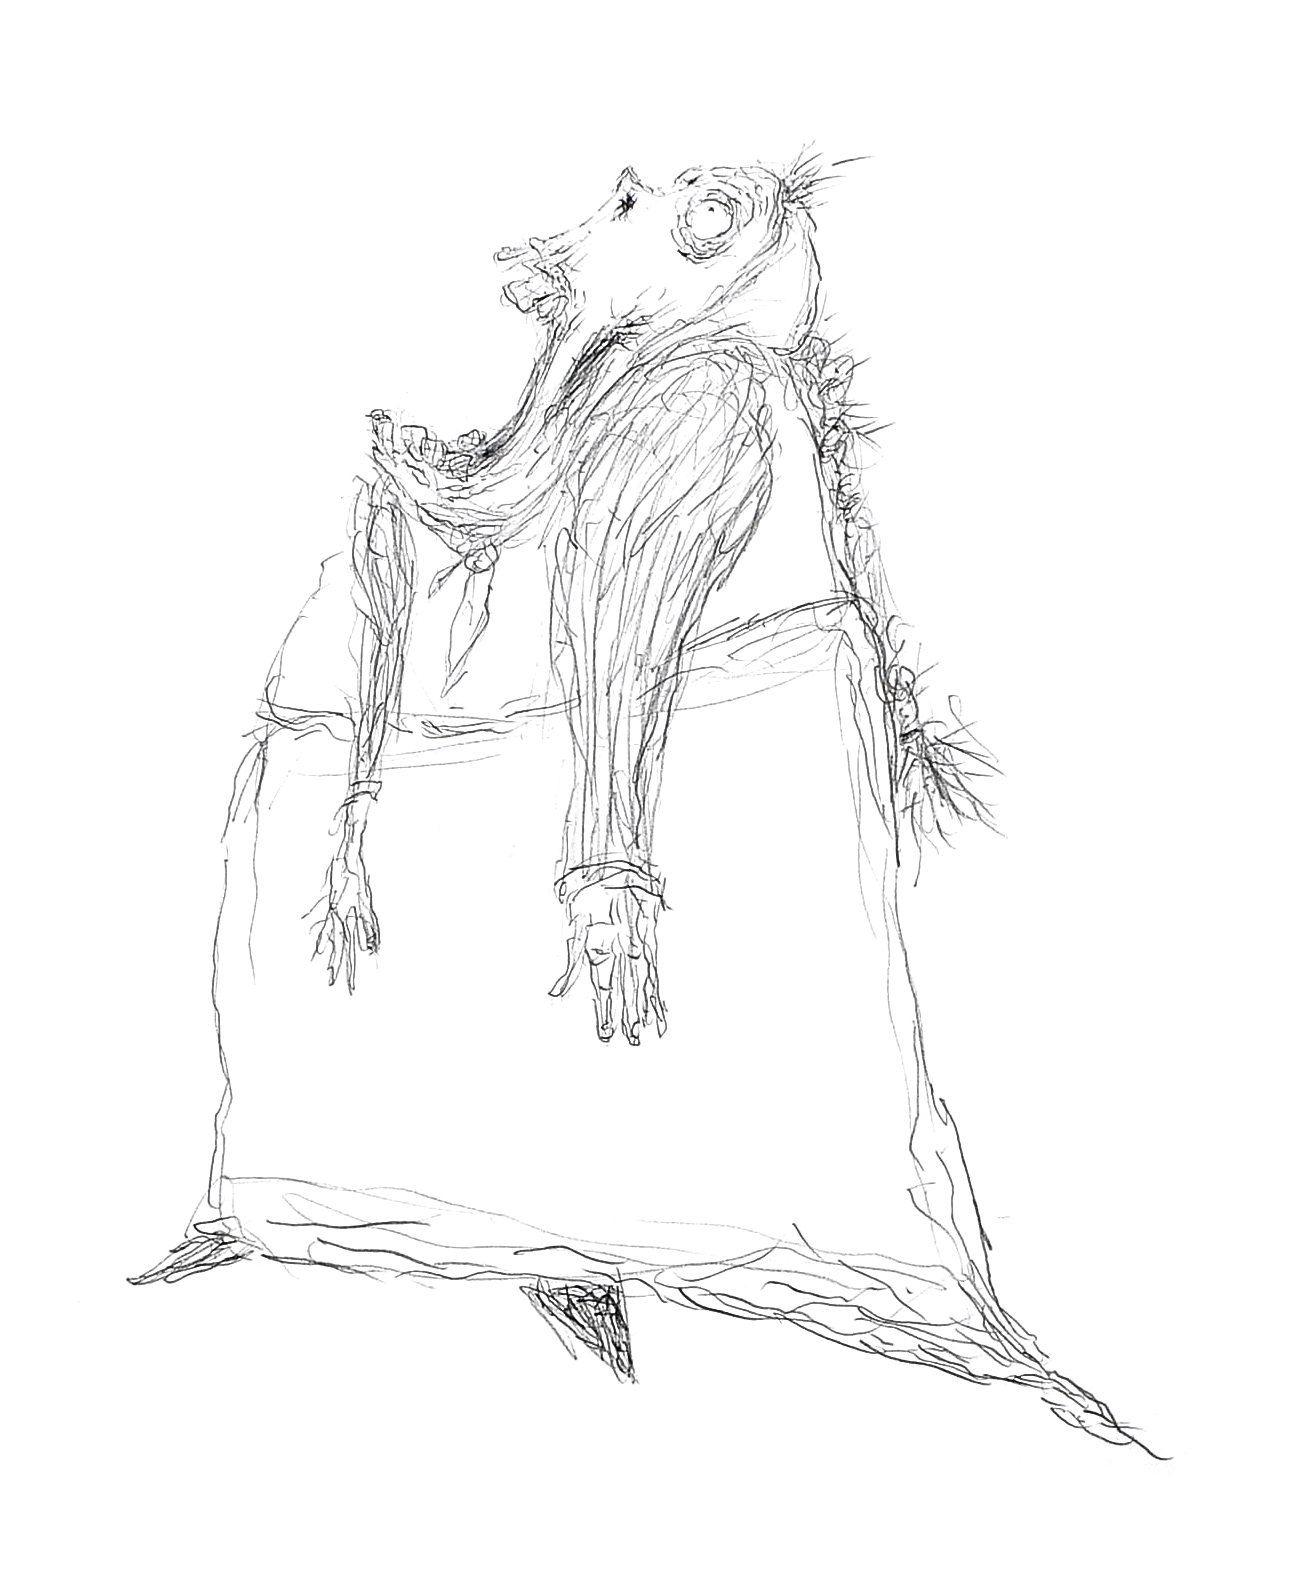 072-paranorman-concept-art-character-design-fat lady zombie 1.jpg